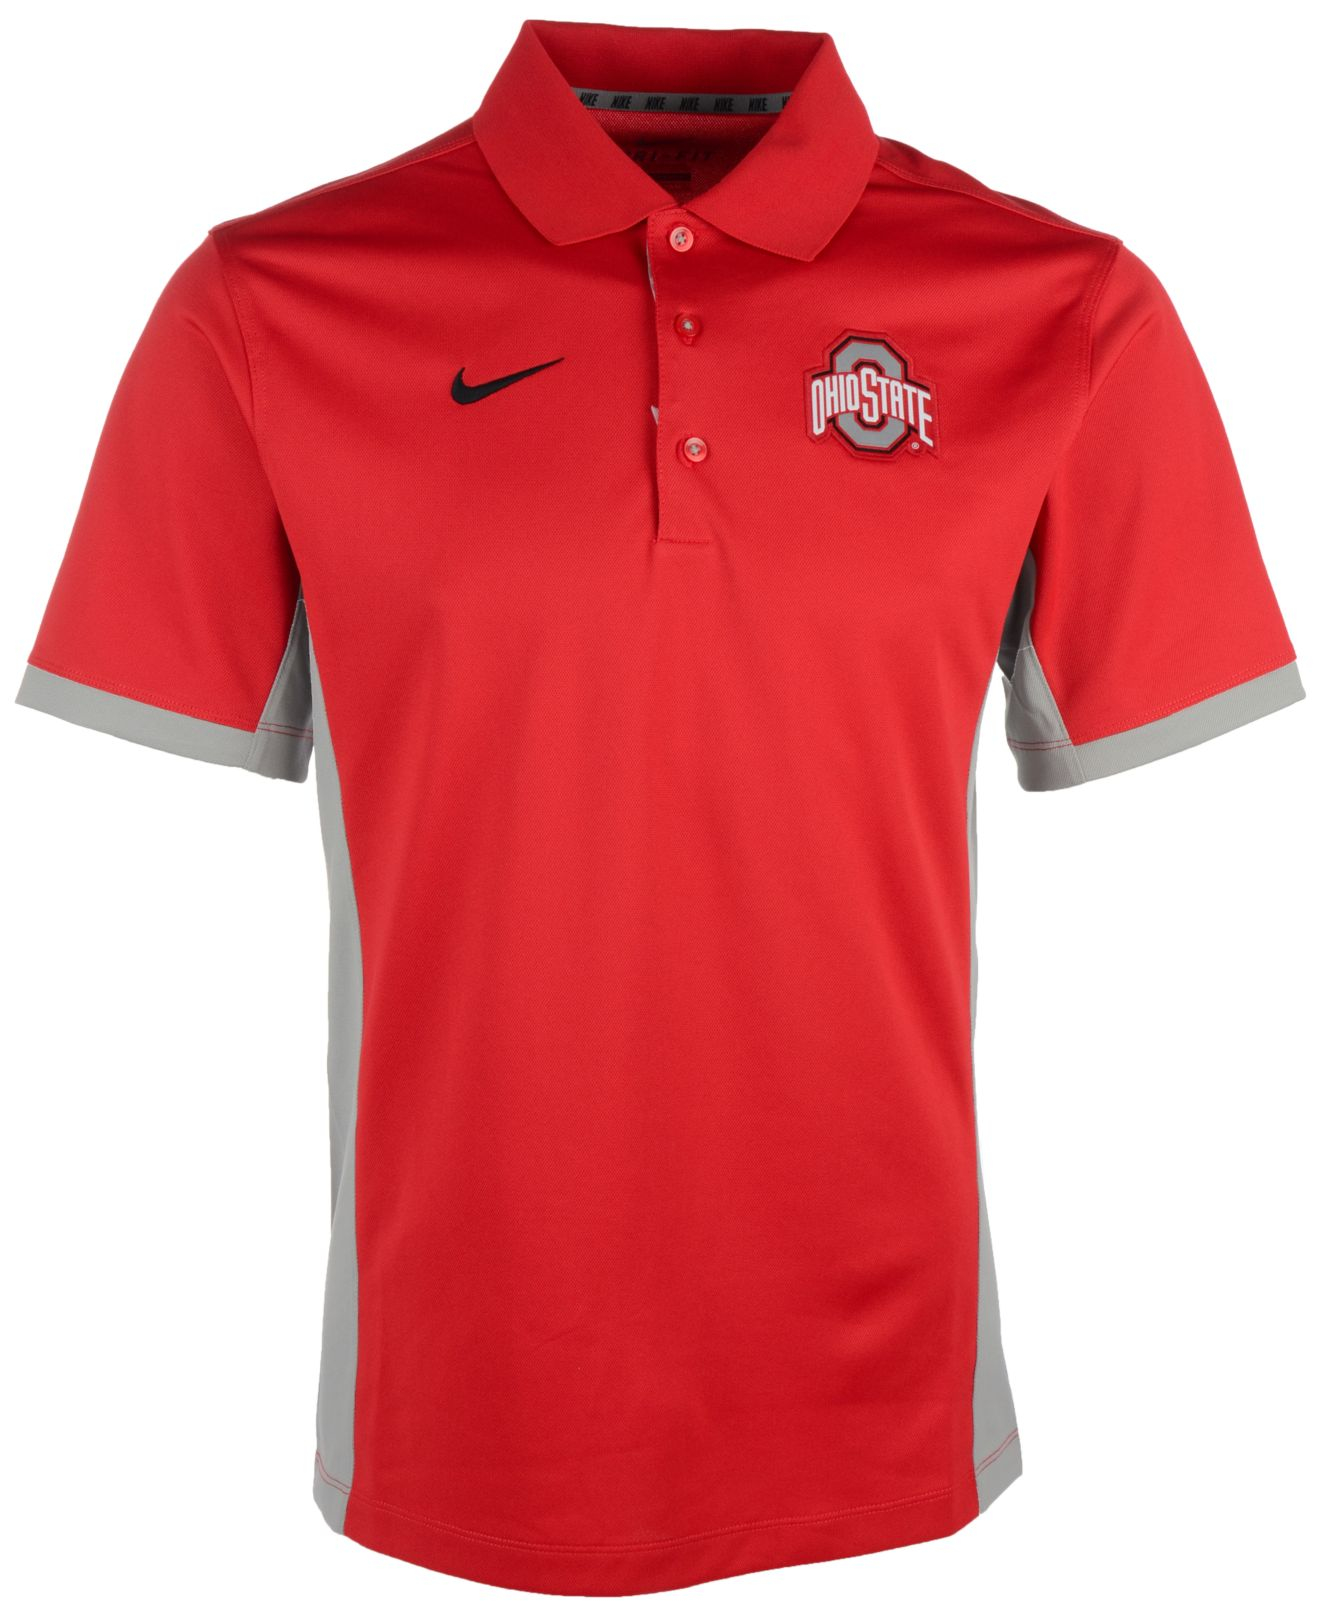 Lyst nike men 39 s ohio state buckeyes team issue polo in for Ohio state polo shirt 3xl